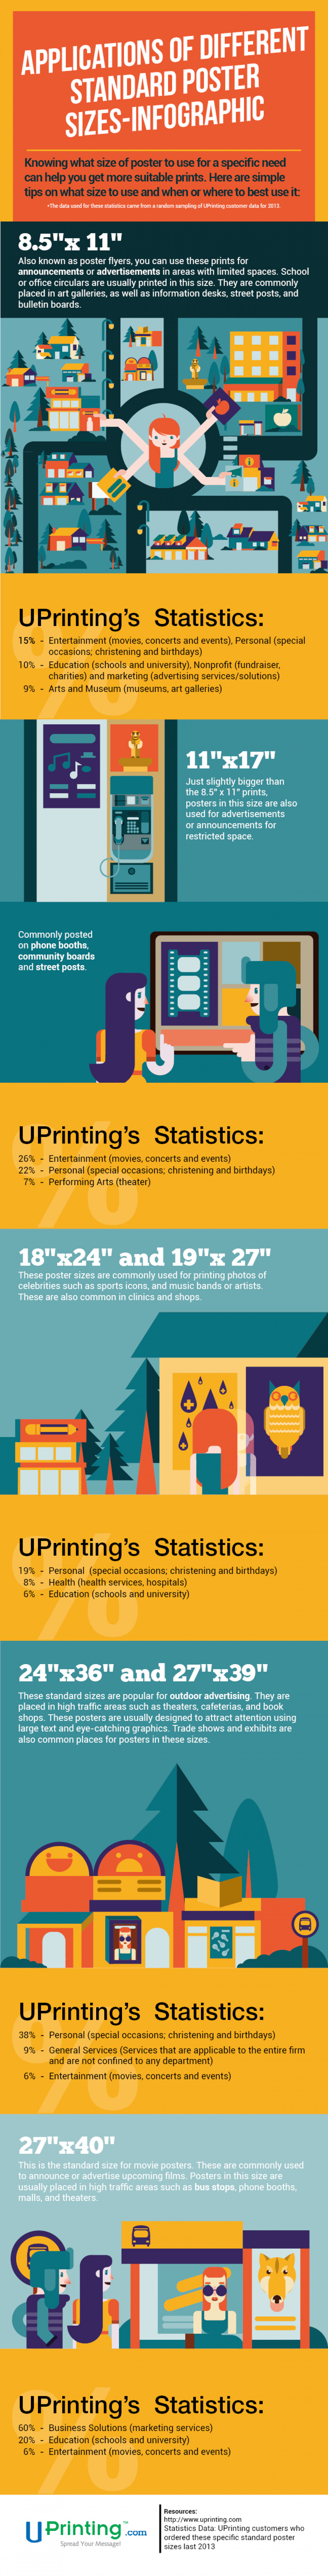 Applications of Different Standard Poster Sizes - Infographic Infographic